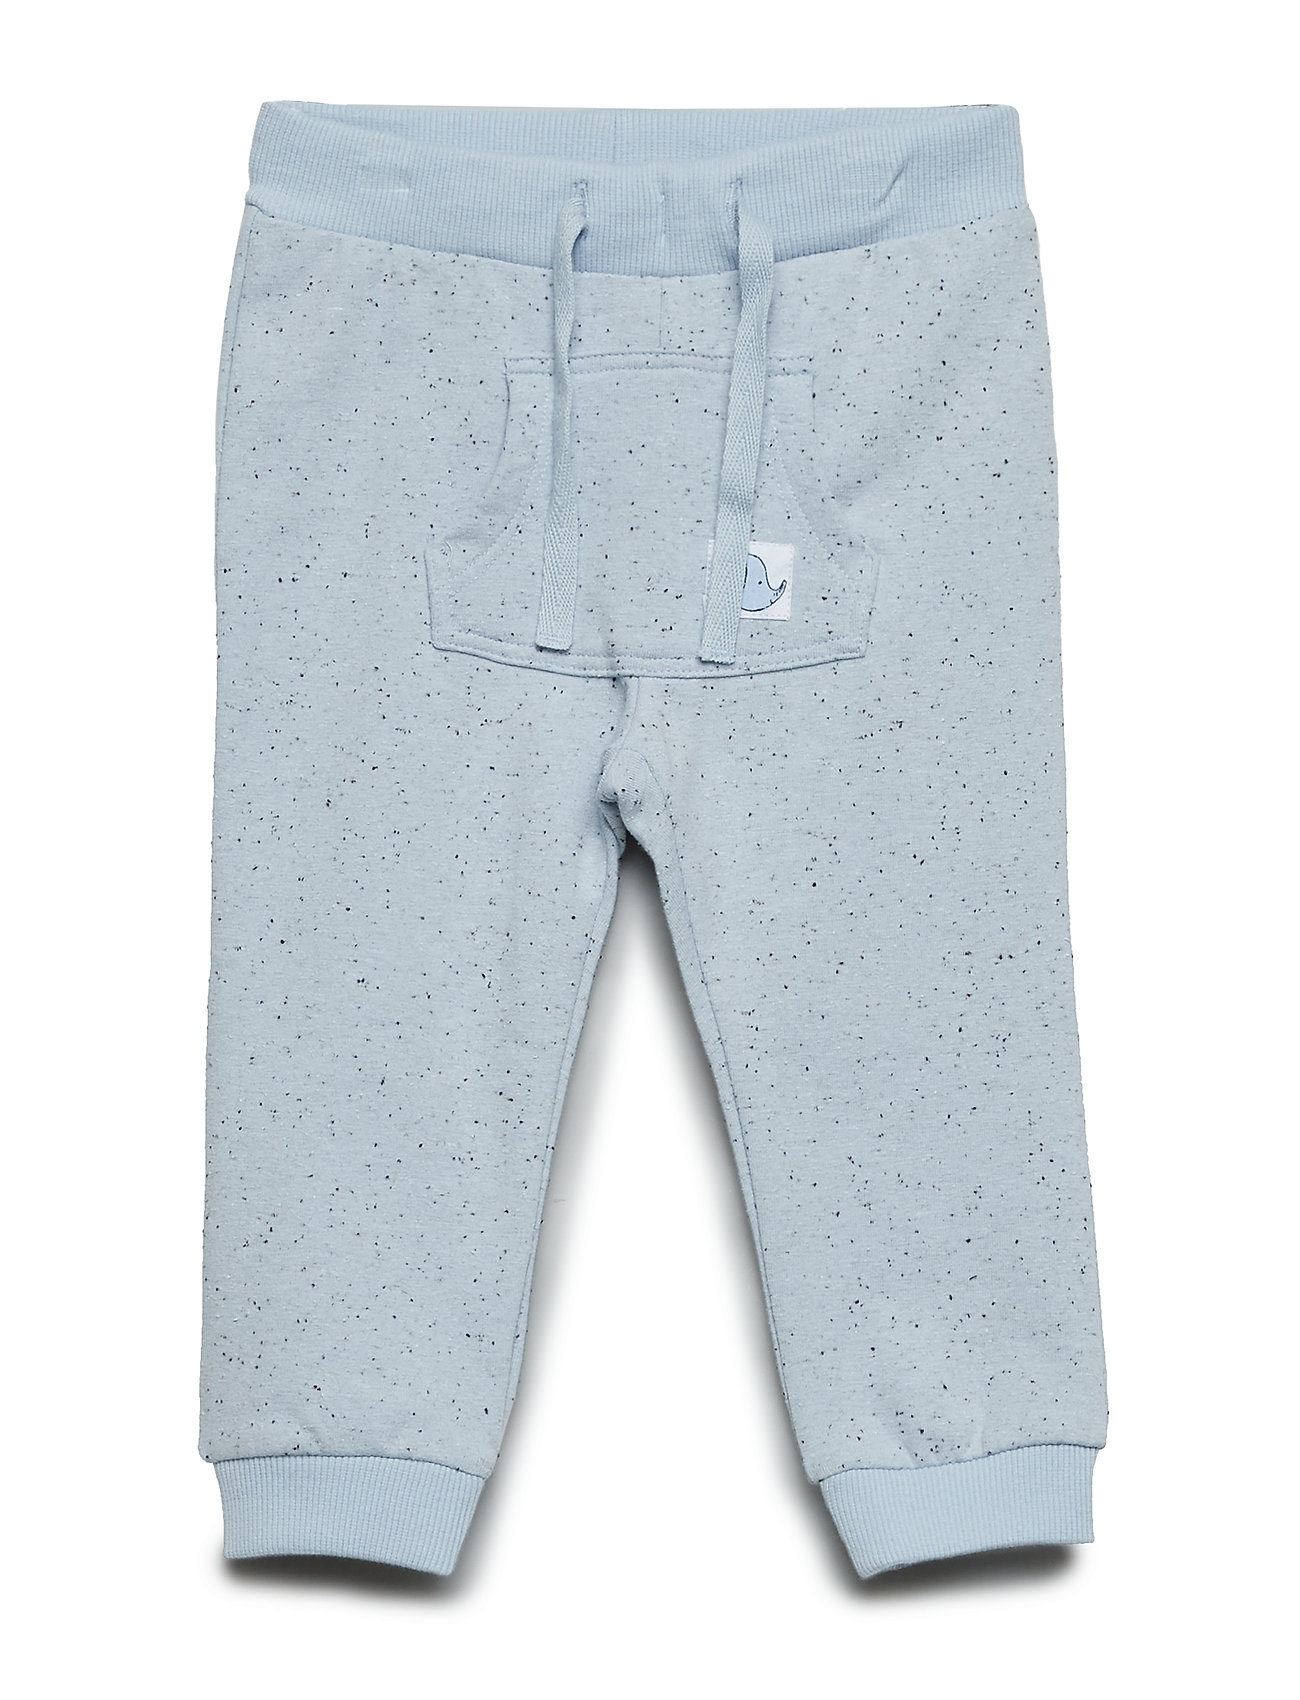 Image of Nbmbelos Swe Pant Unb Bukser Blå NAME IT (3111745687)